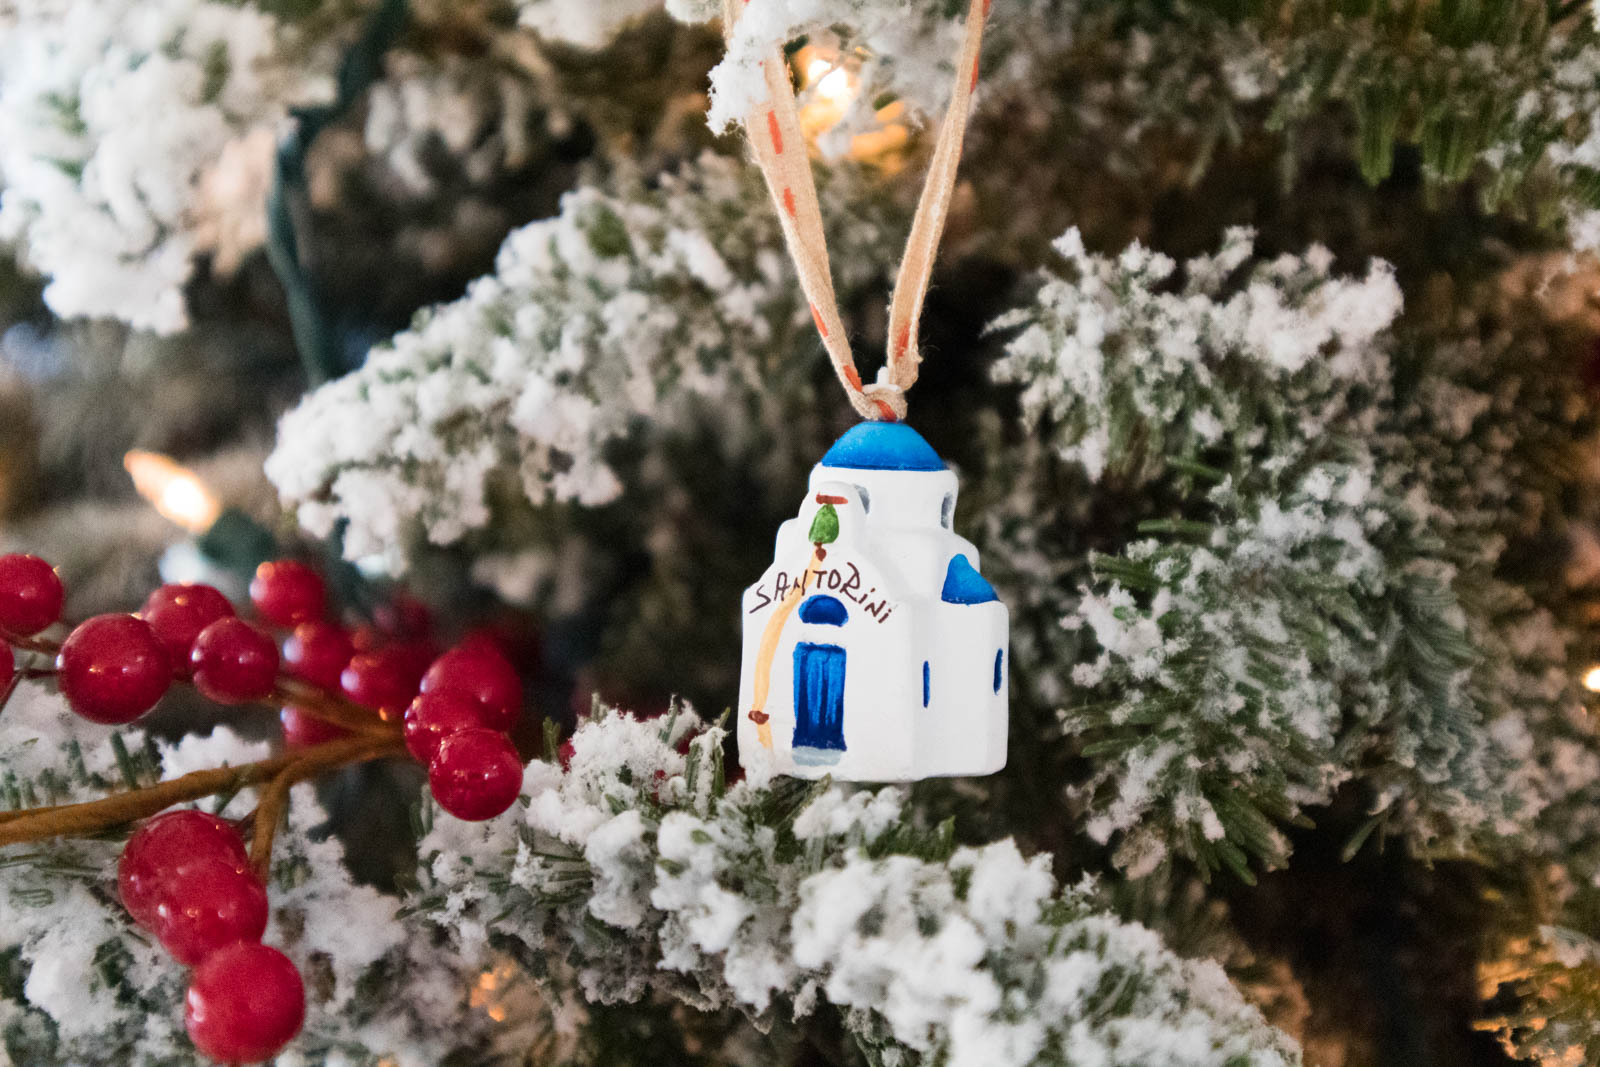 santorini ornament